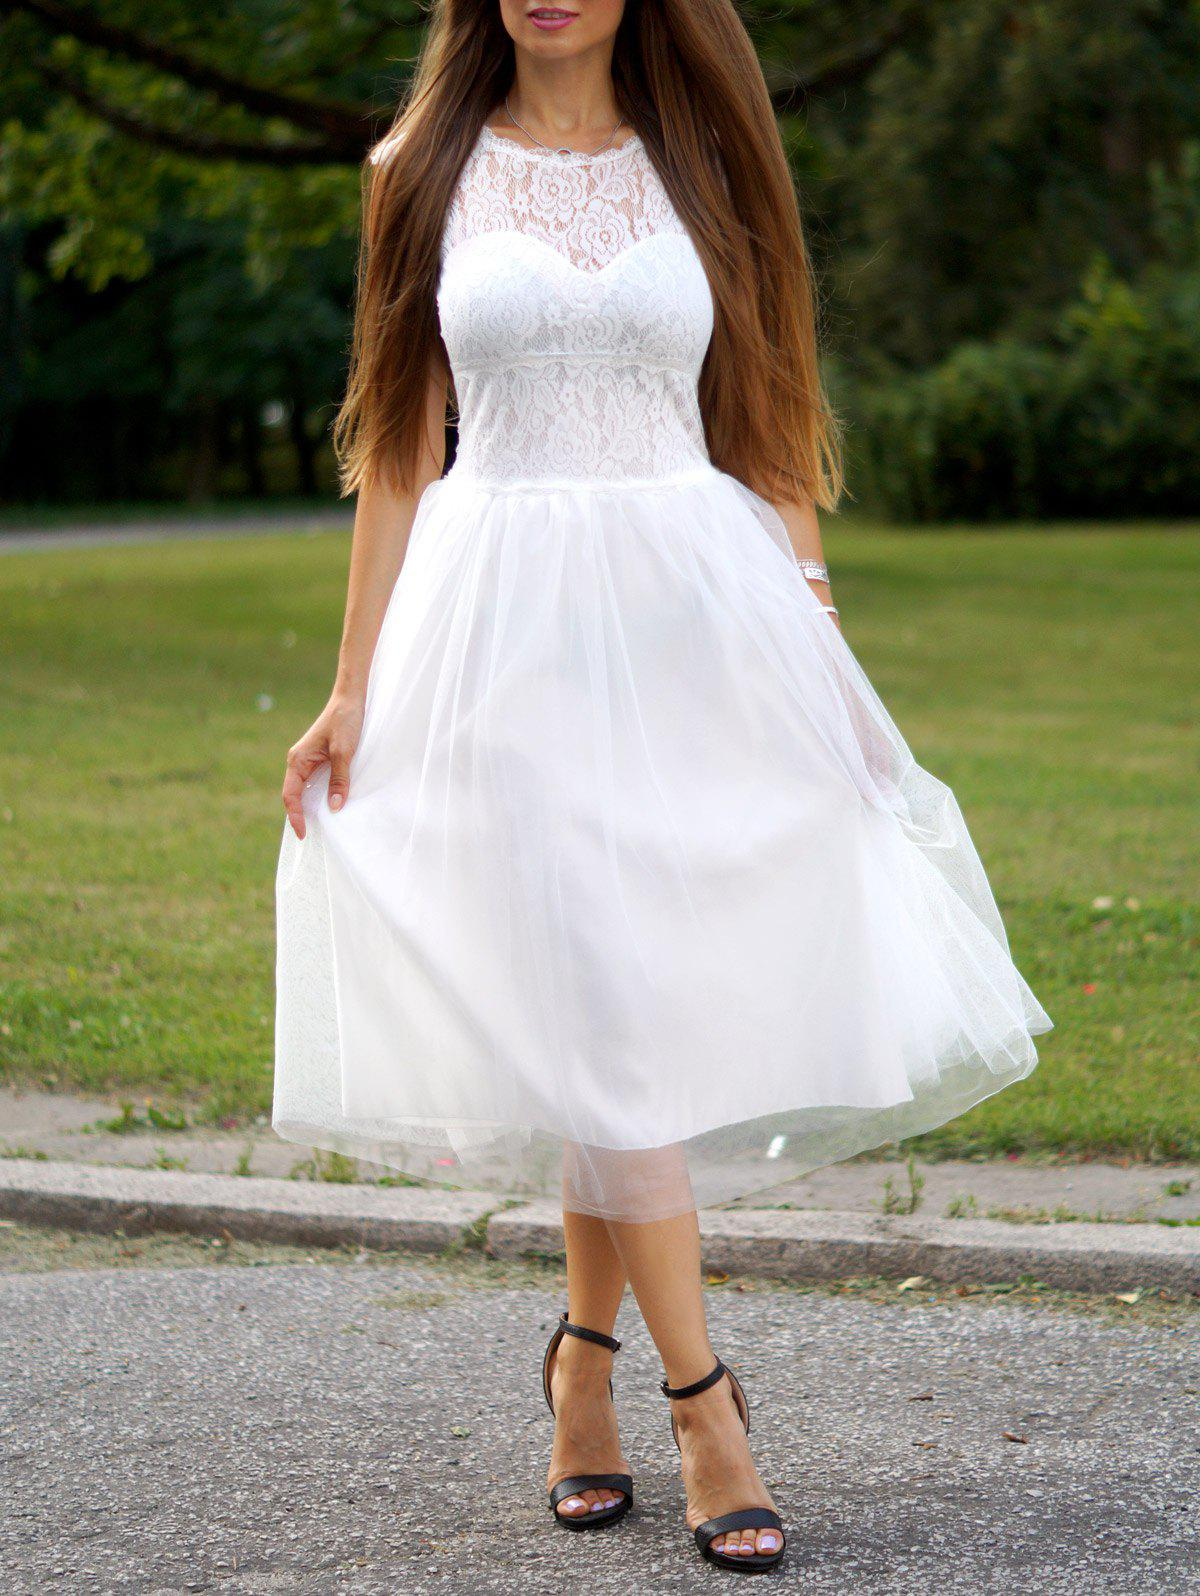 Fashionable Women's Round Neck Short Sleeve Lace Splicing A-Line Dress - WHITE M